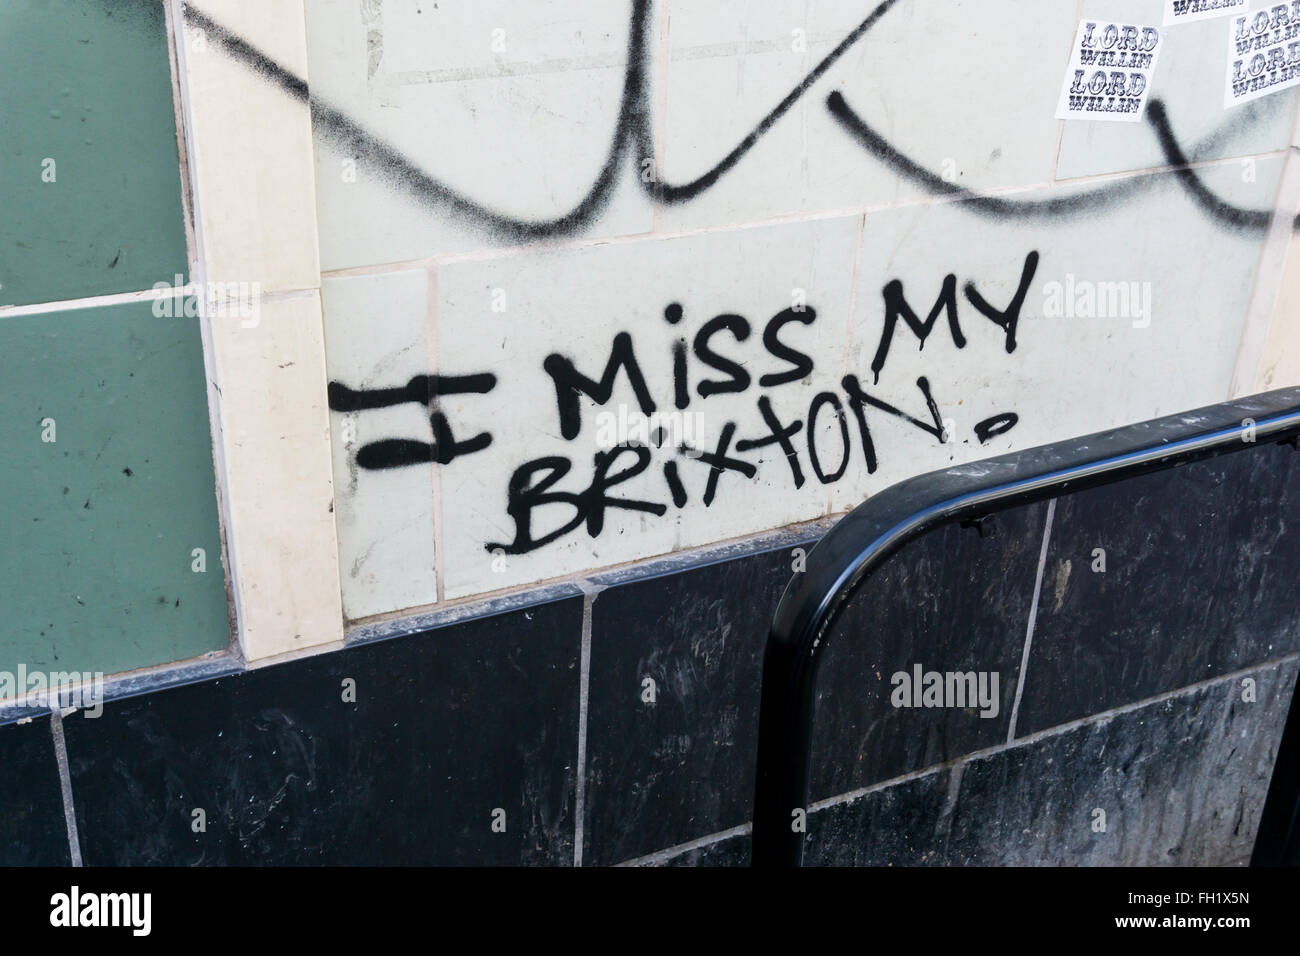 I Miss My Brixton graffiti protesting against gentrification of the area. - Stock Image